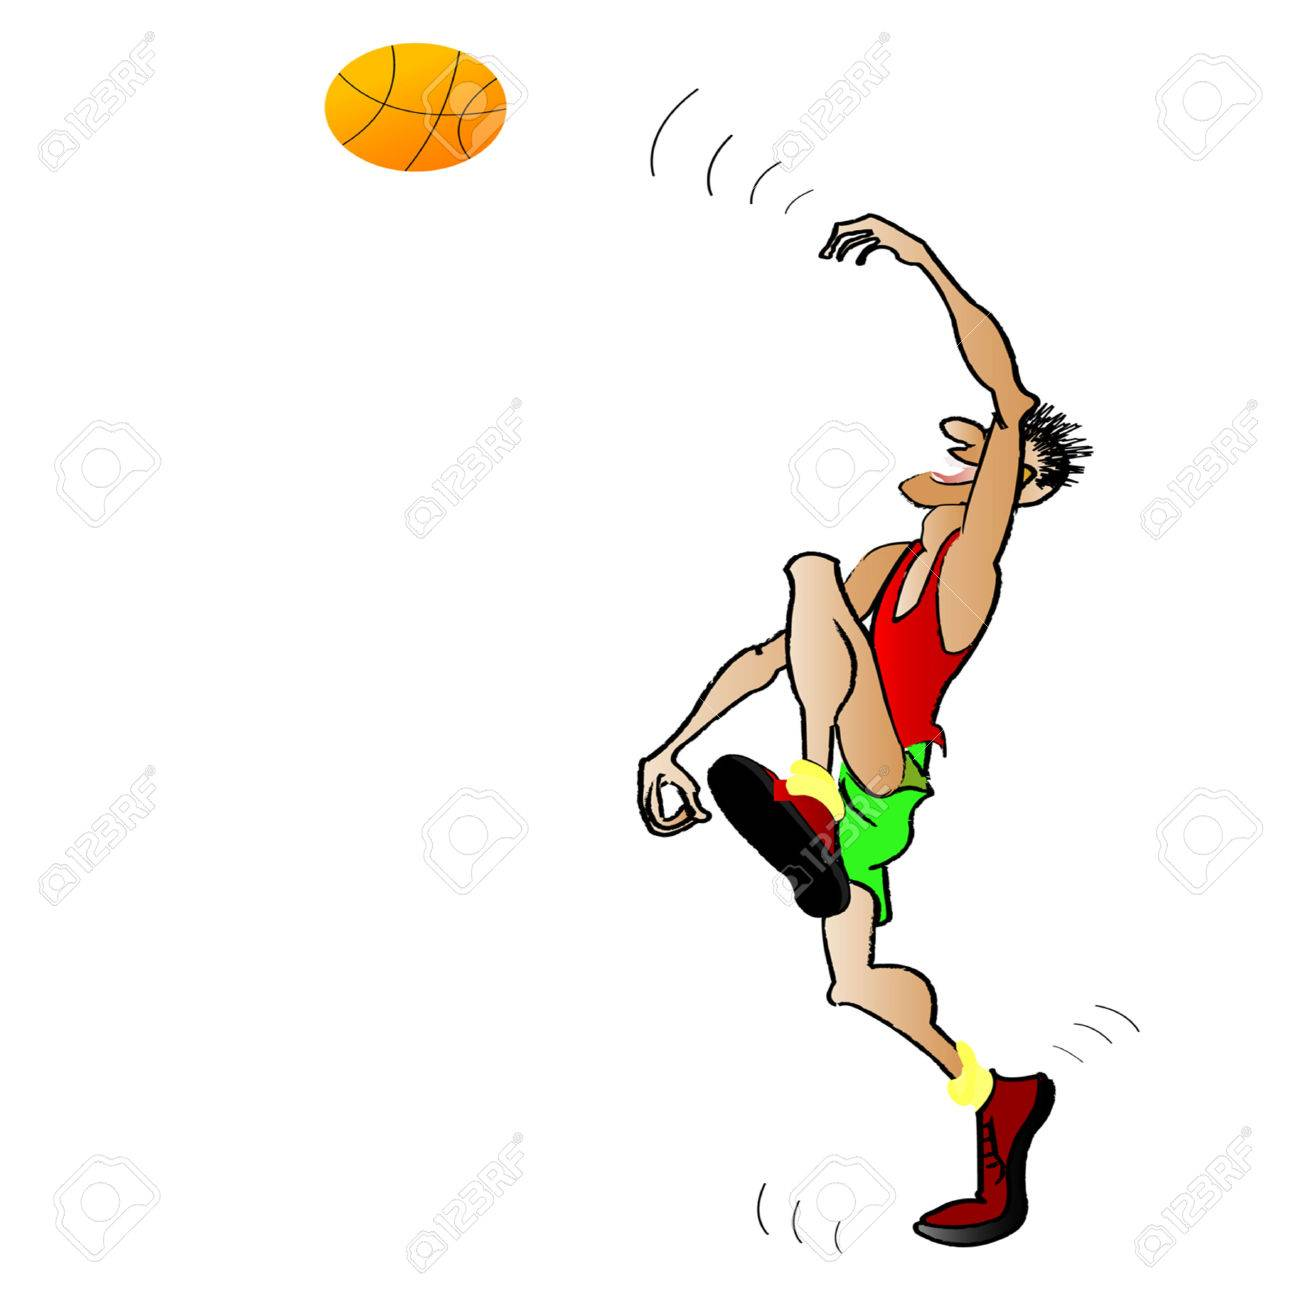 The basketball player in a red vest a throwing ball Stock Vector - 7672769